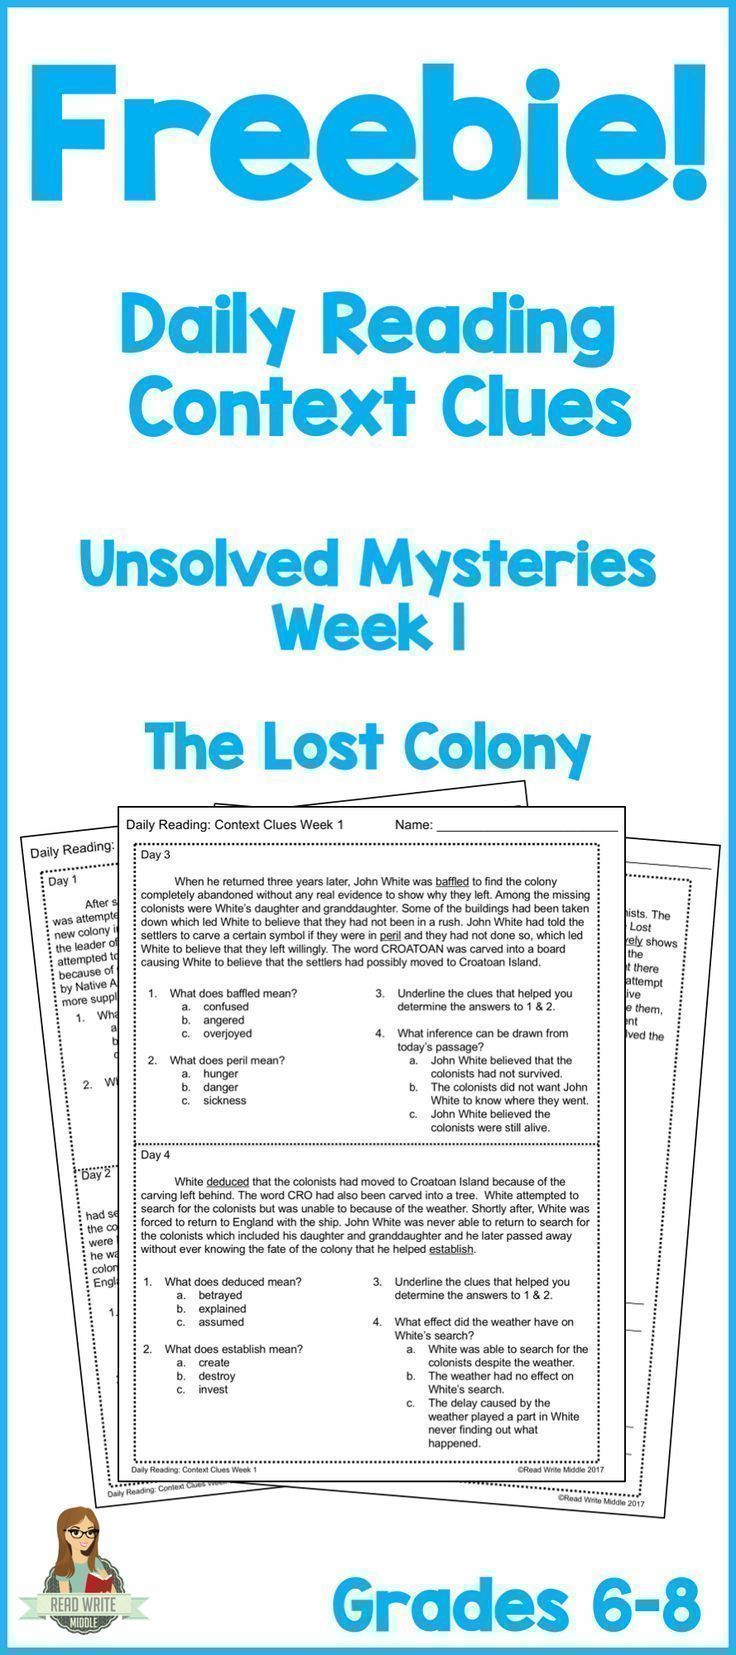 Daily Reading Context Clues Week 1 Context Clues Reading Comprehension Worksheets Reading Passages [ 1655 x 736 Pixel ]